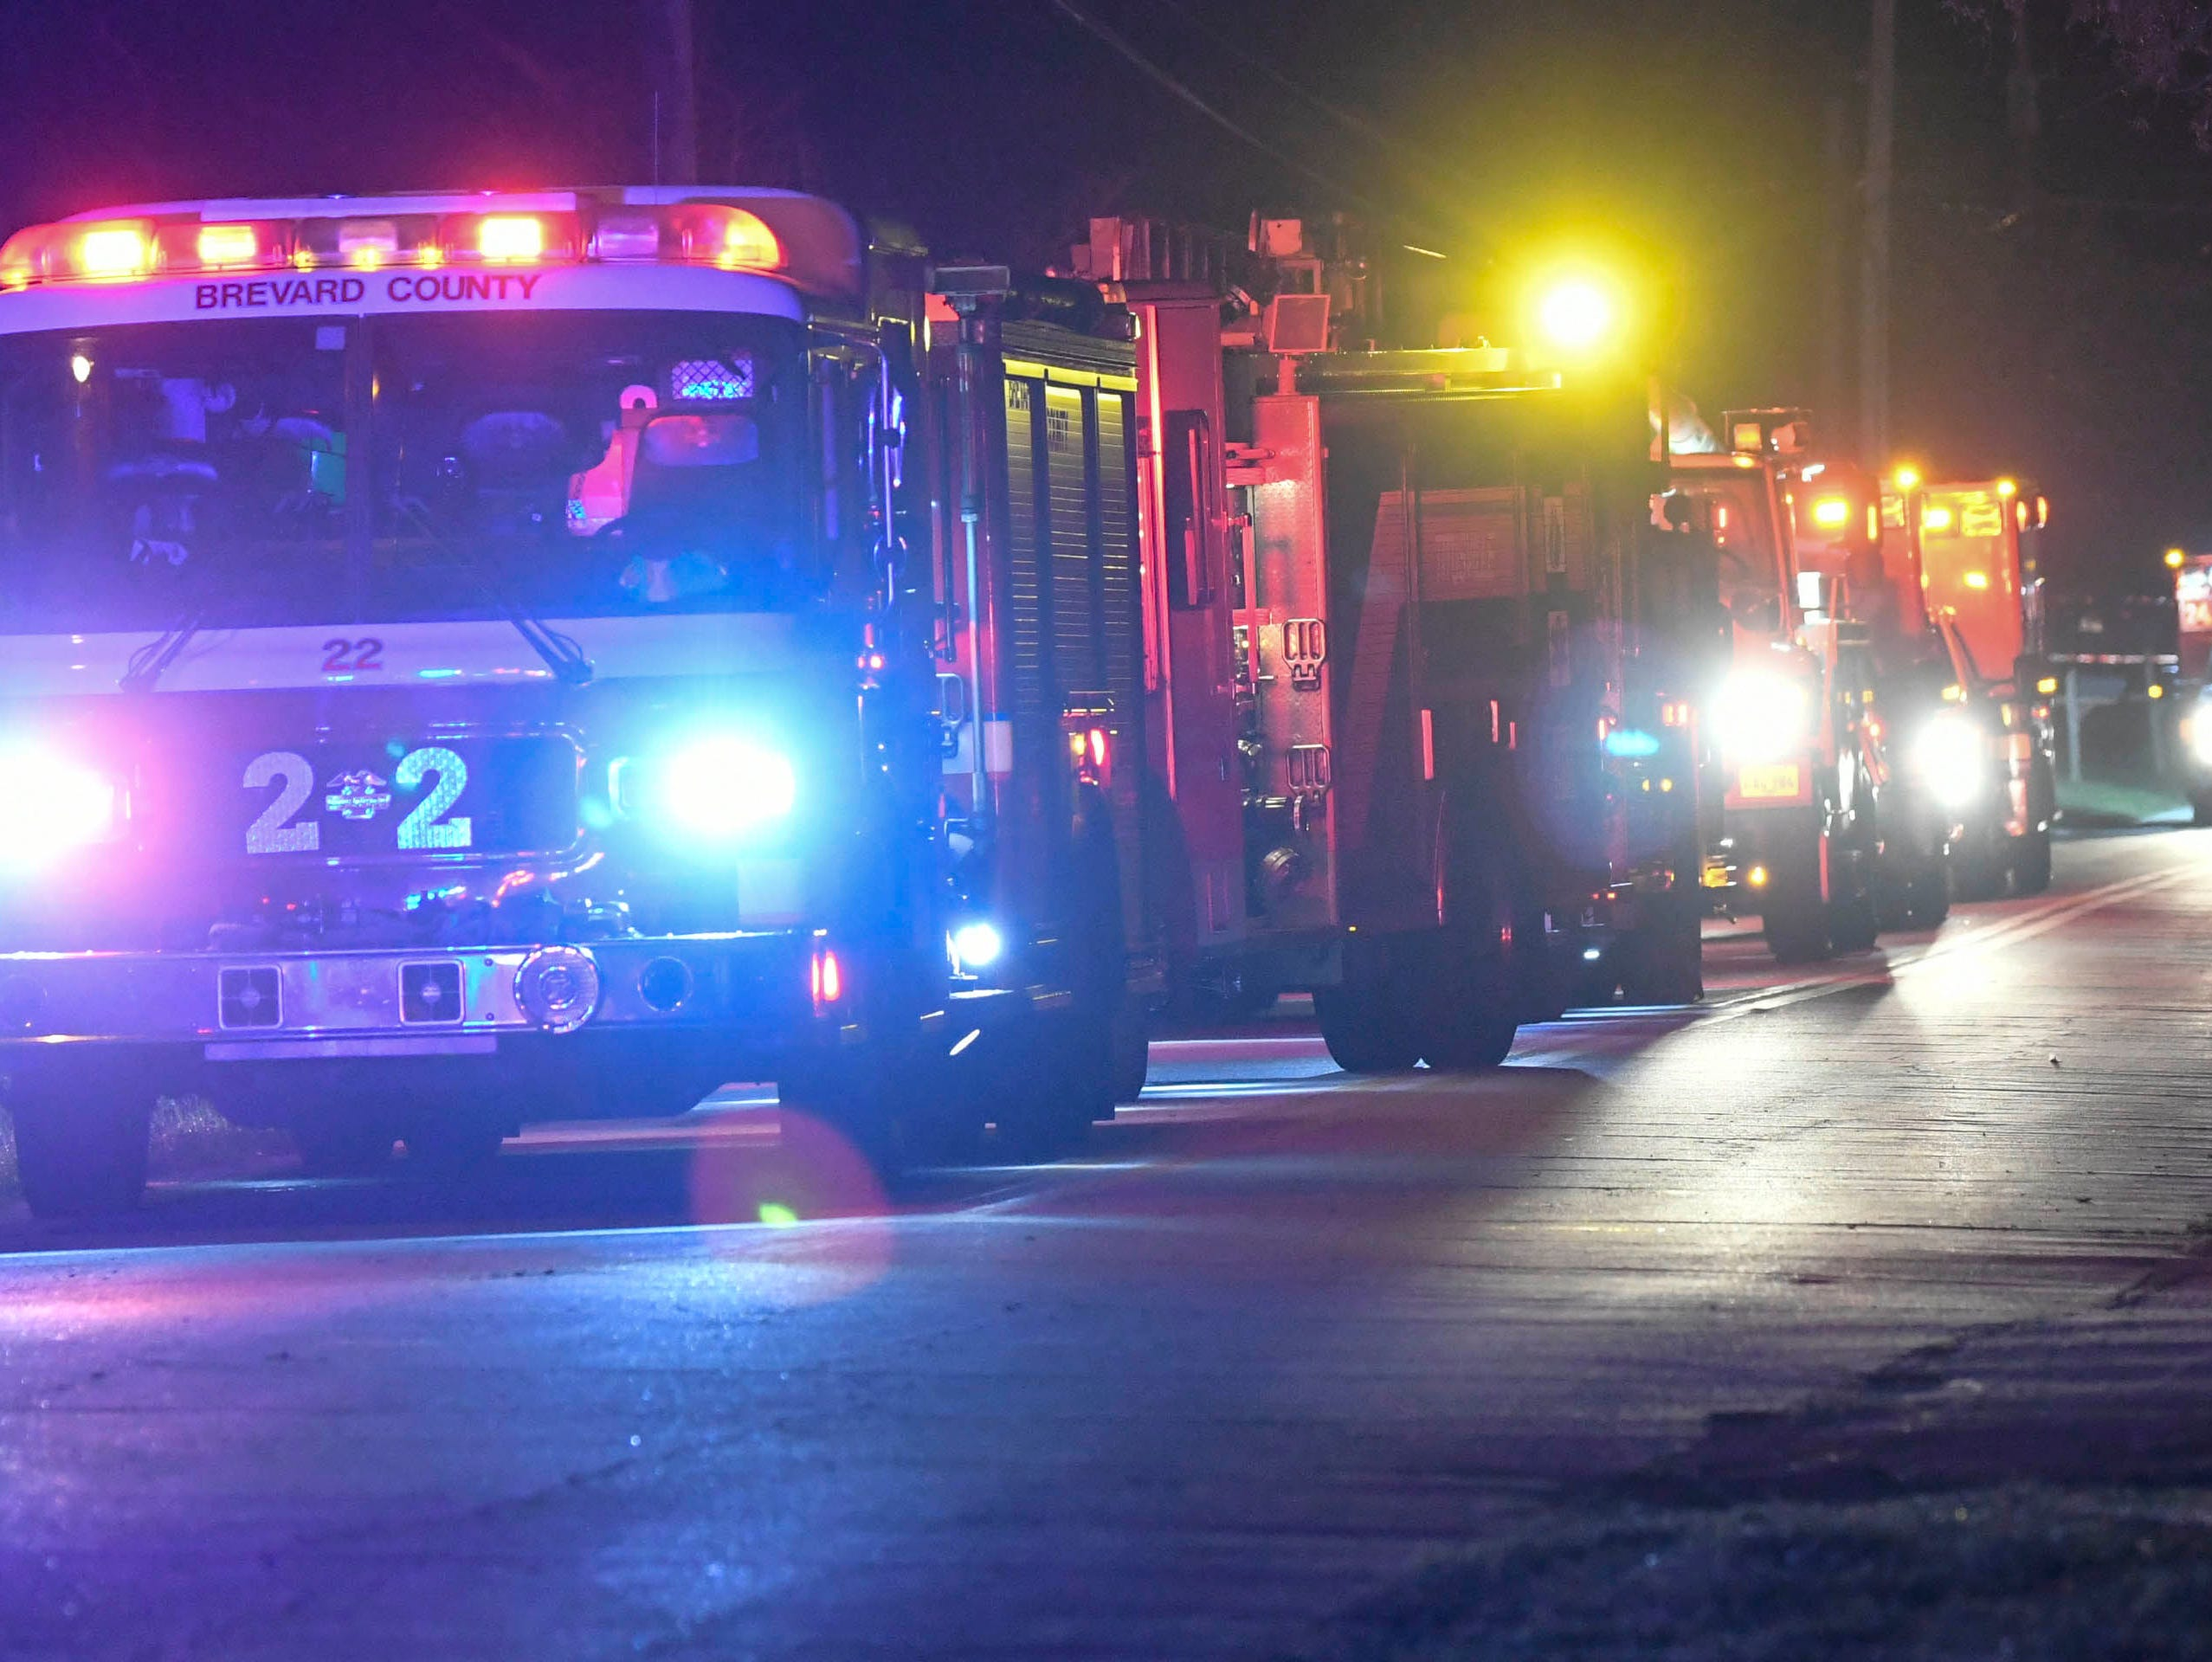 Brevard County fire and rescue vehicles park near a house fire on Brockett Rd. In Mims early Friday morning. The house was heavily damaged in the blaze.